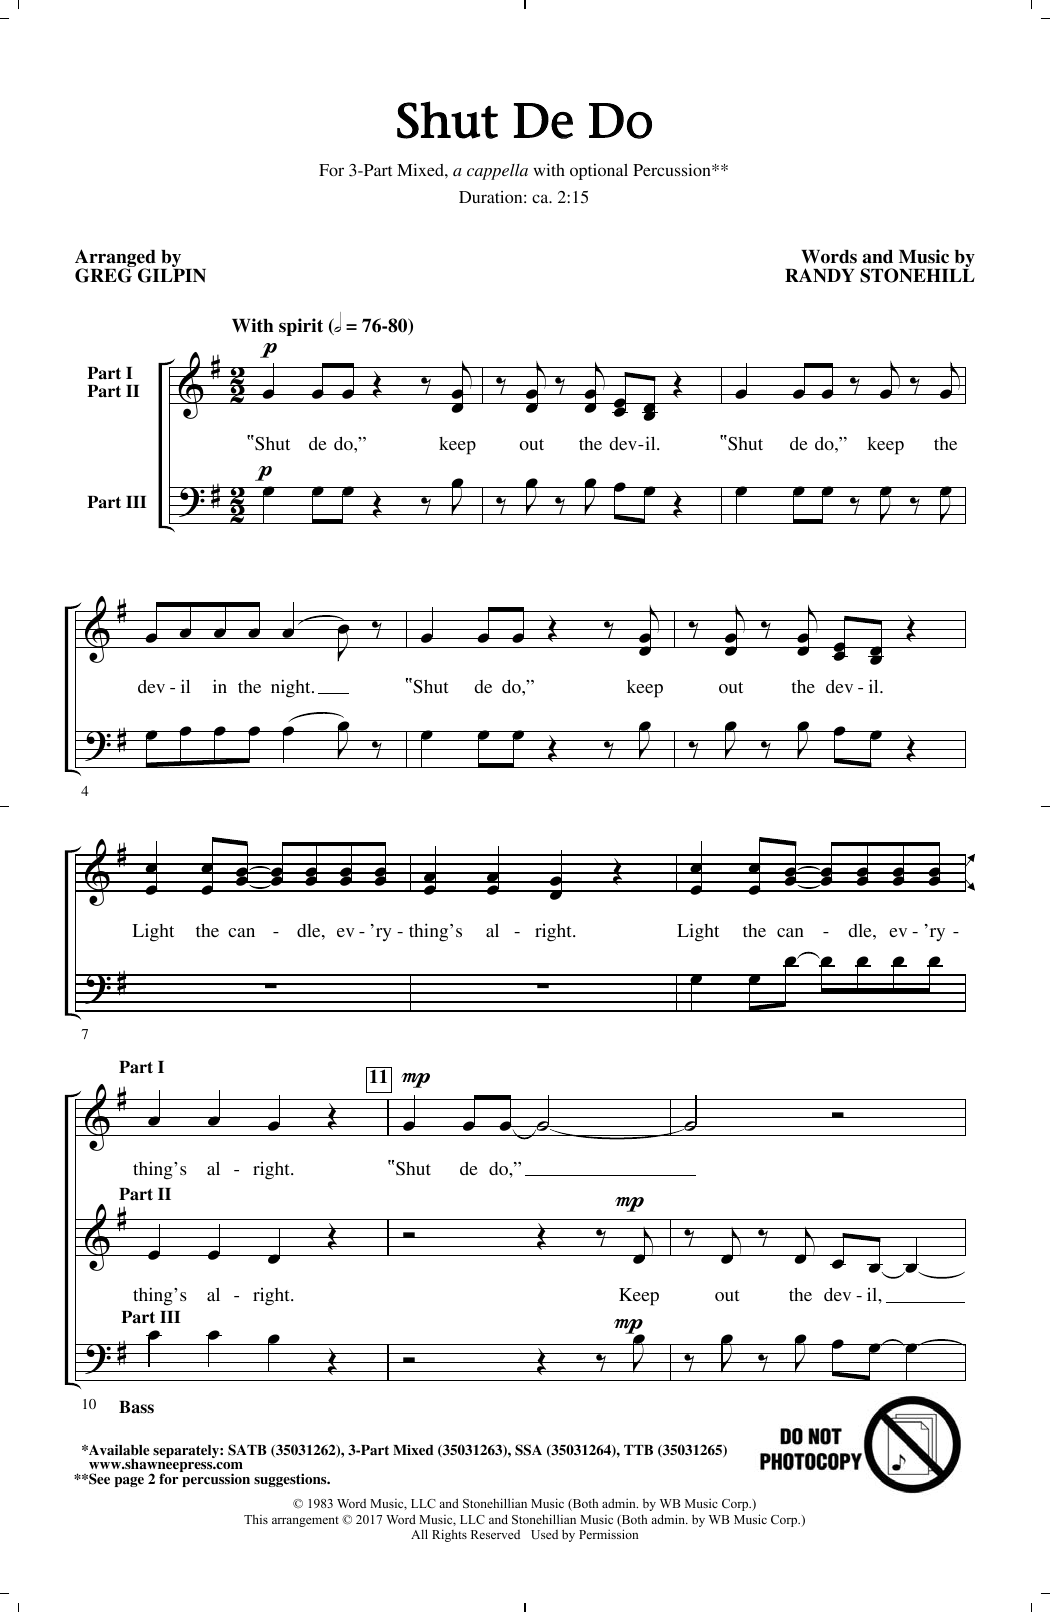 Shut de Do Sheet Music